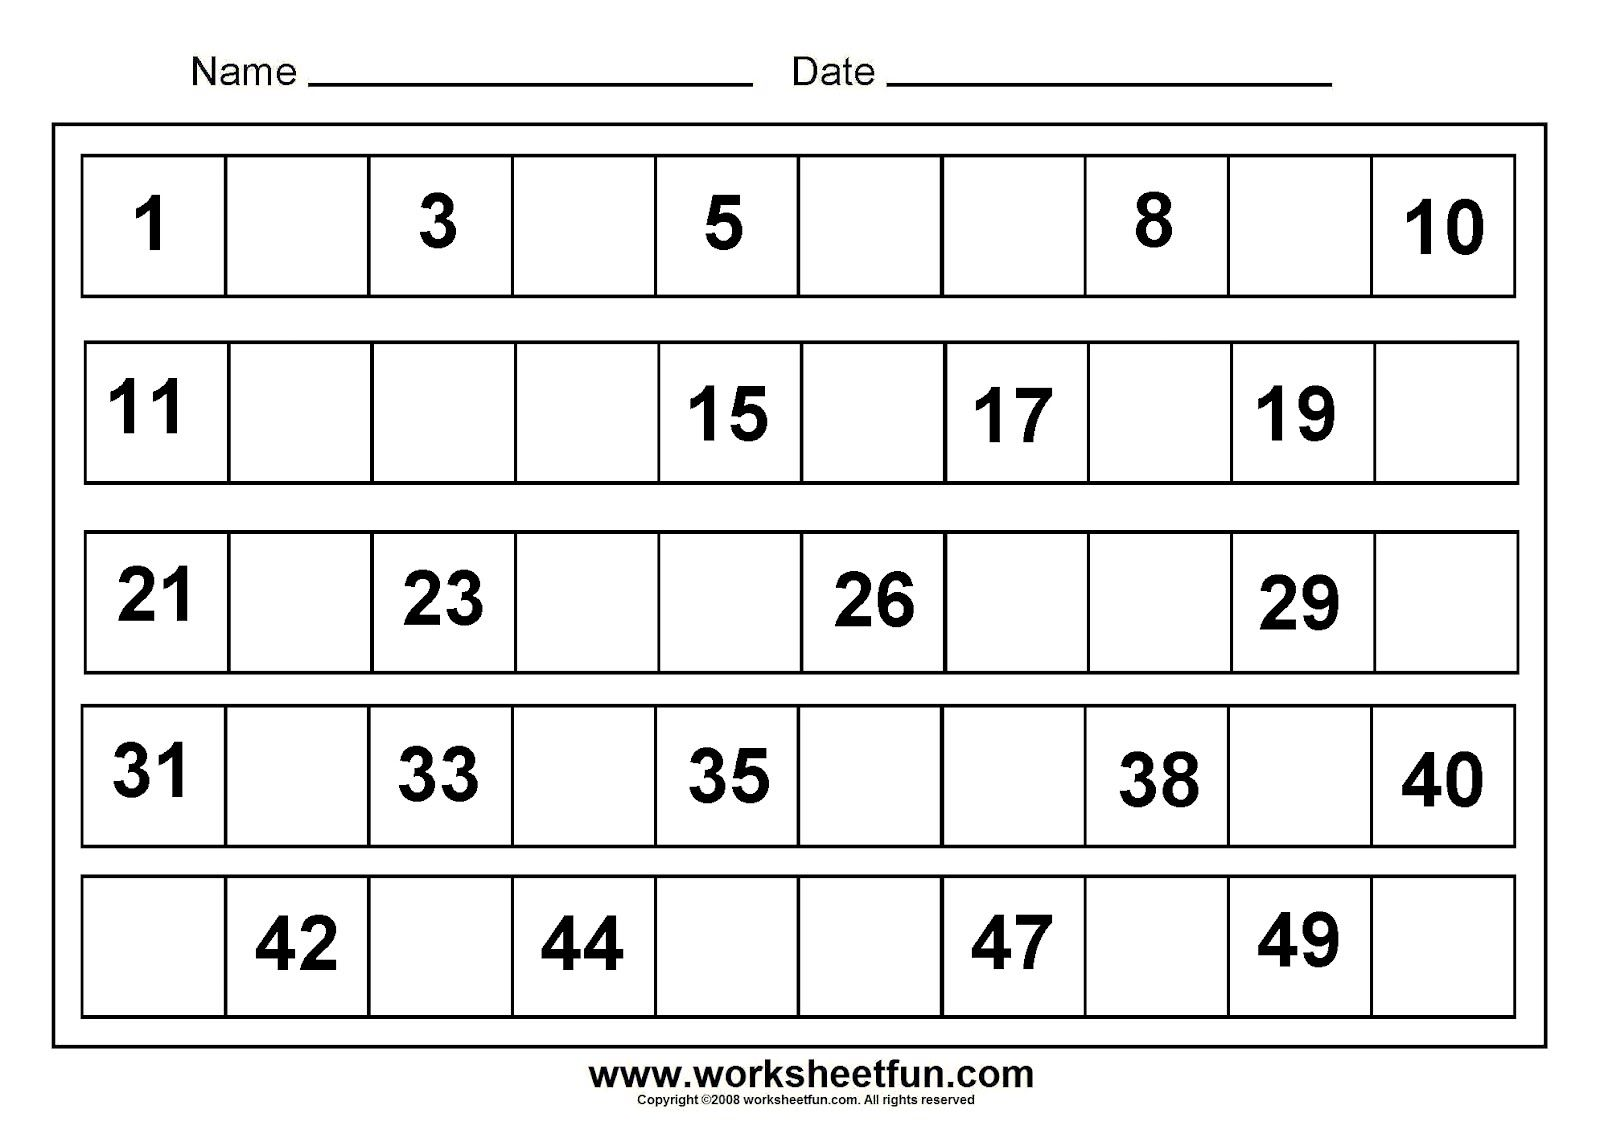 math worksheet : 1000 images about work sheets on pinterest  math worksheets  : Kindergarten Grade Worksheets